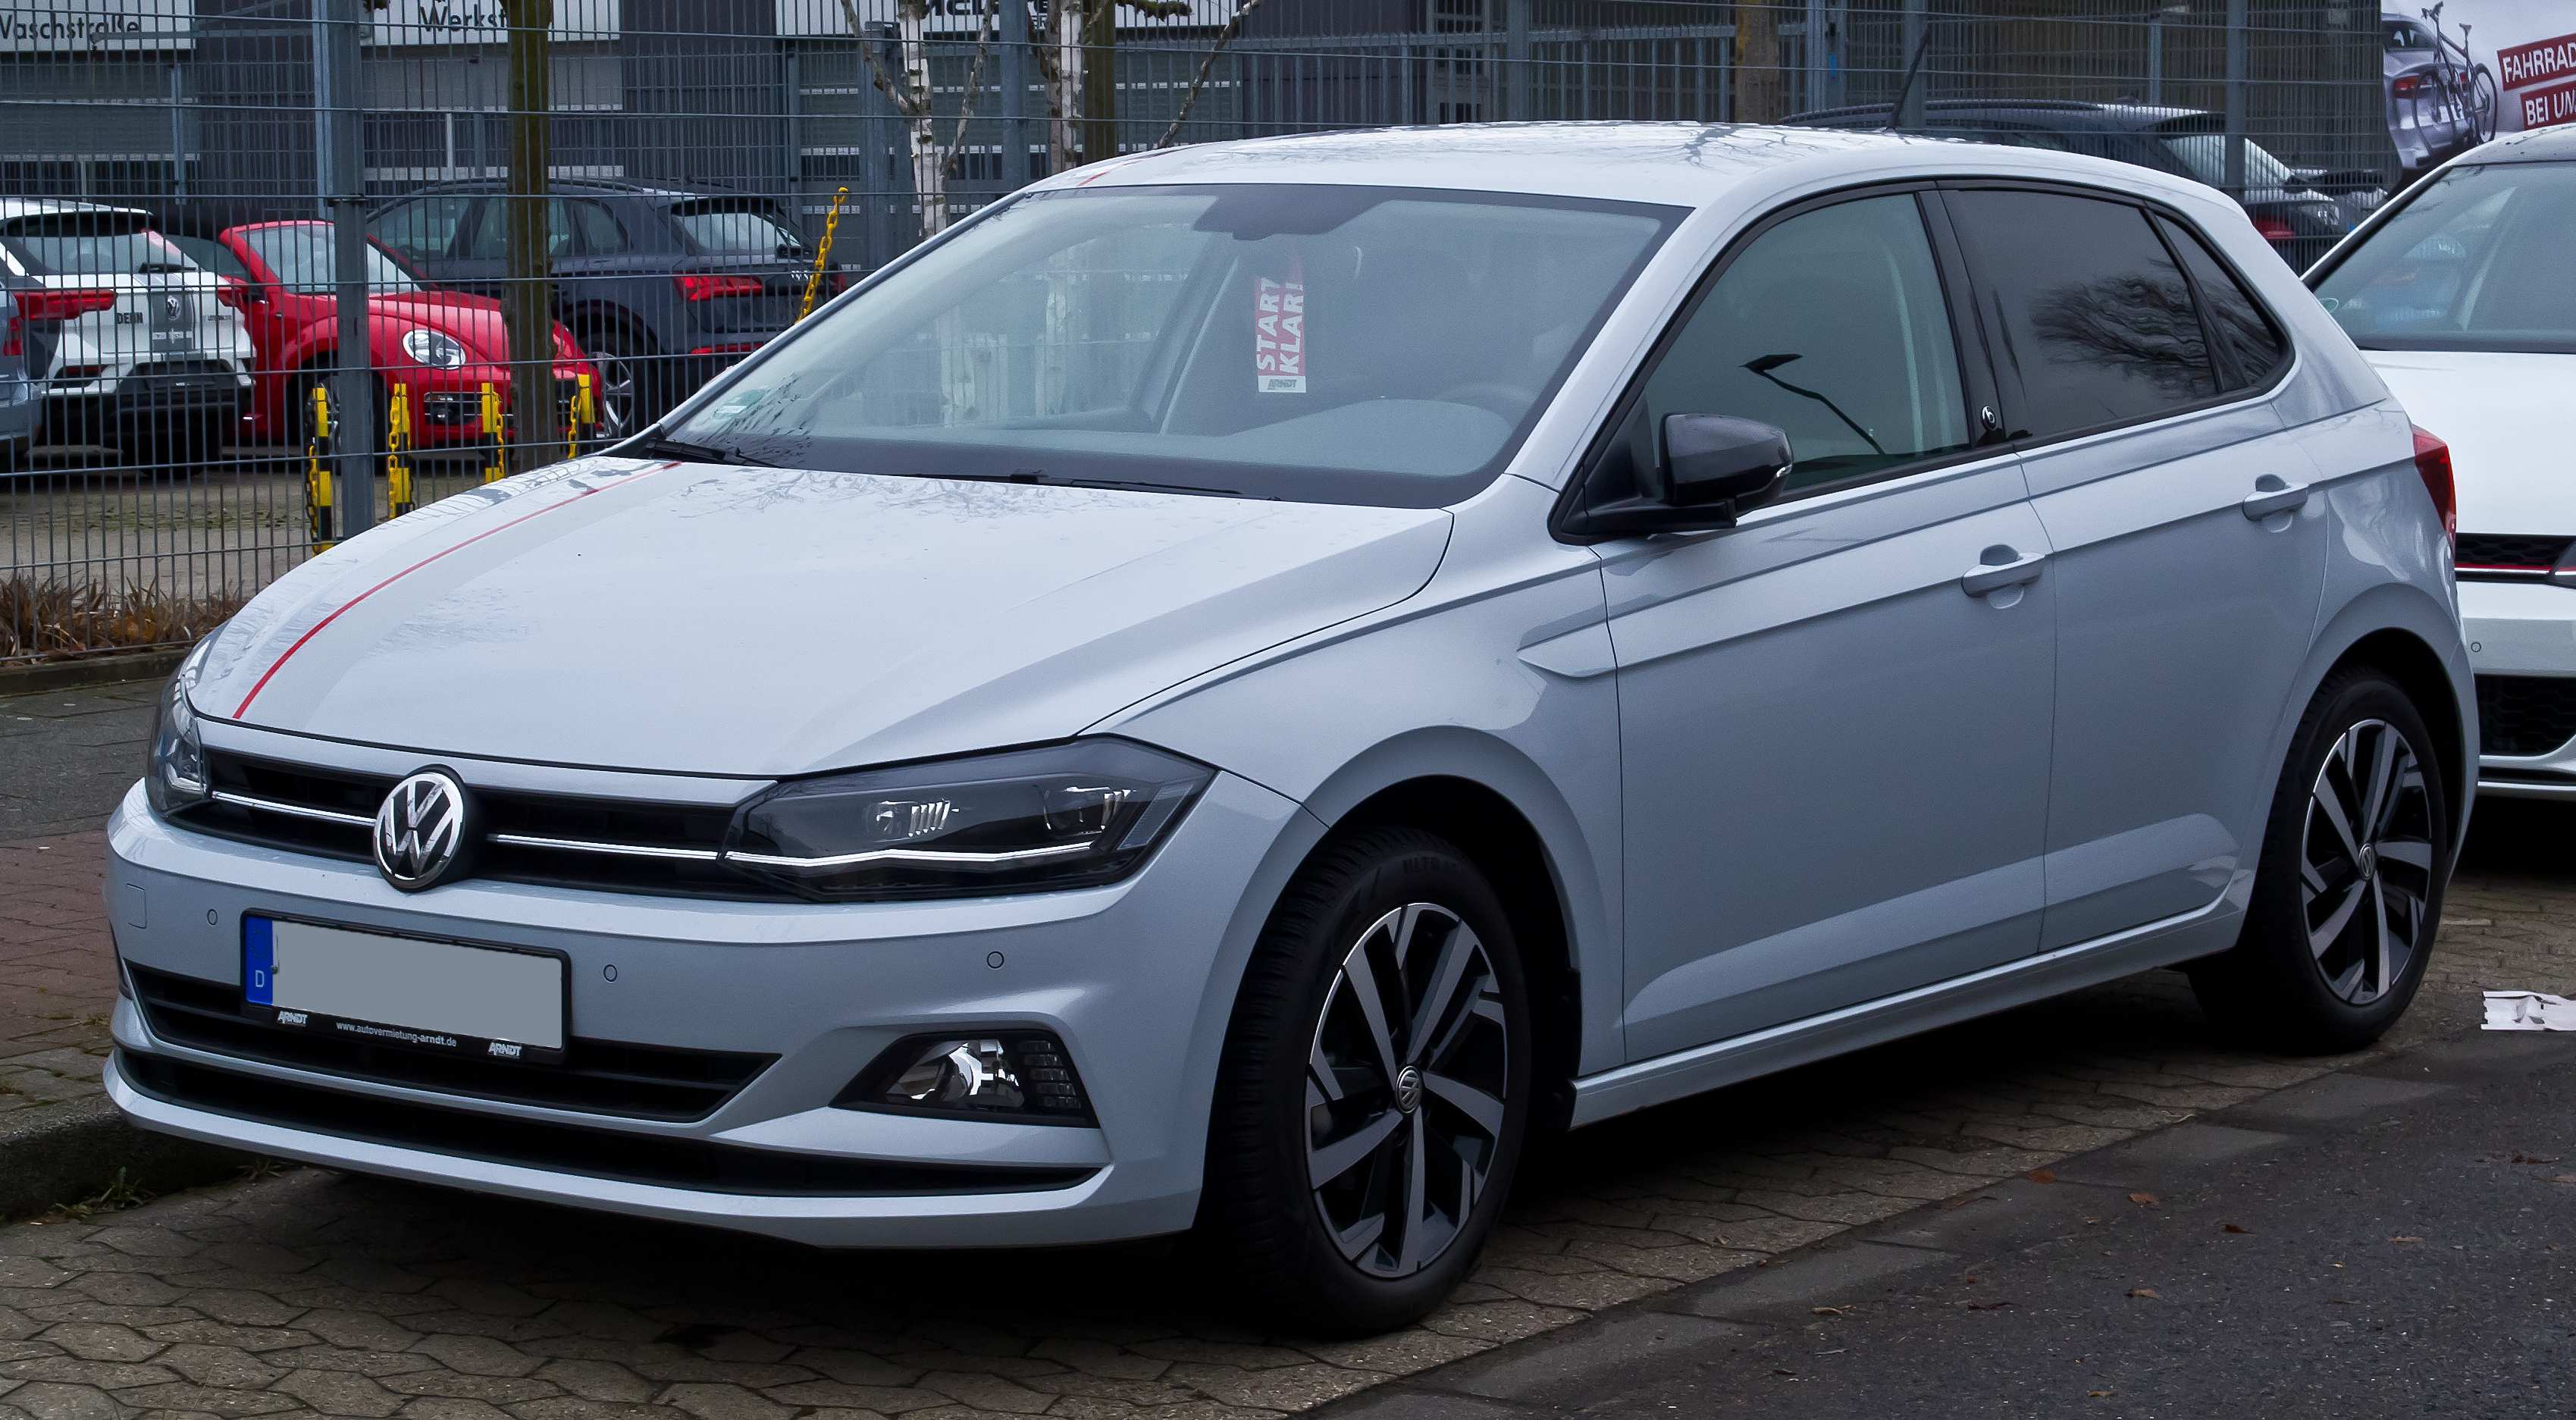 65 All New Vw Polo 2019 India Rumors